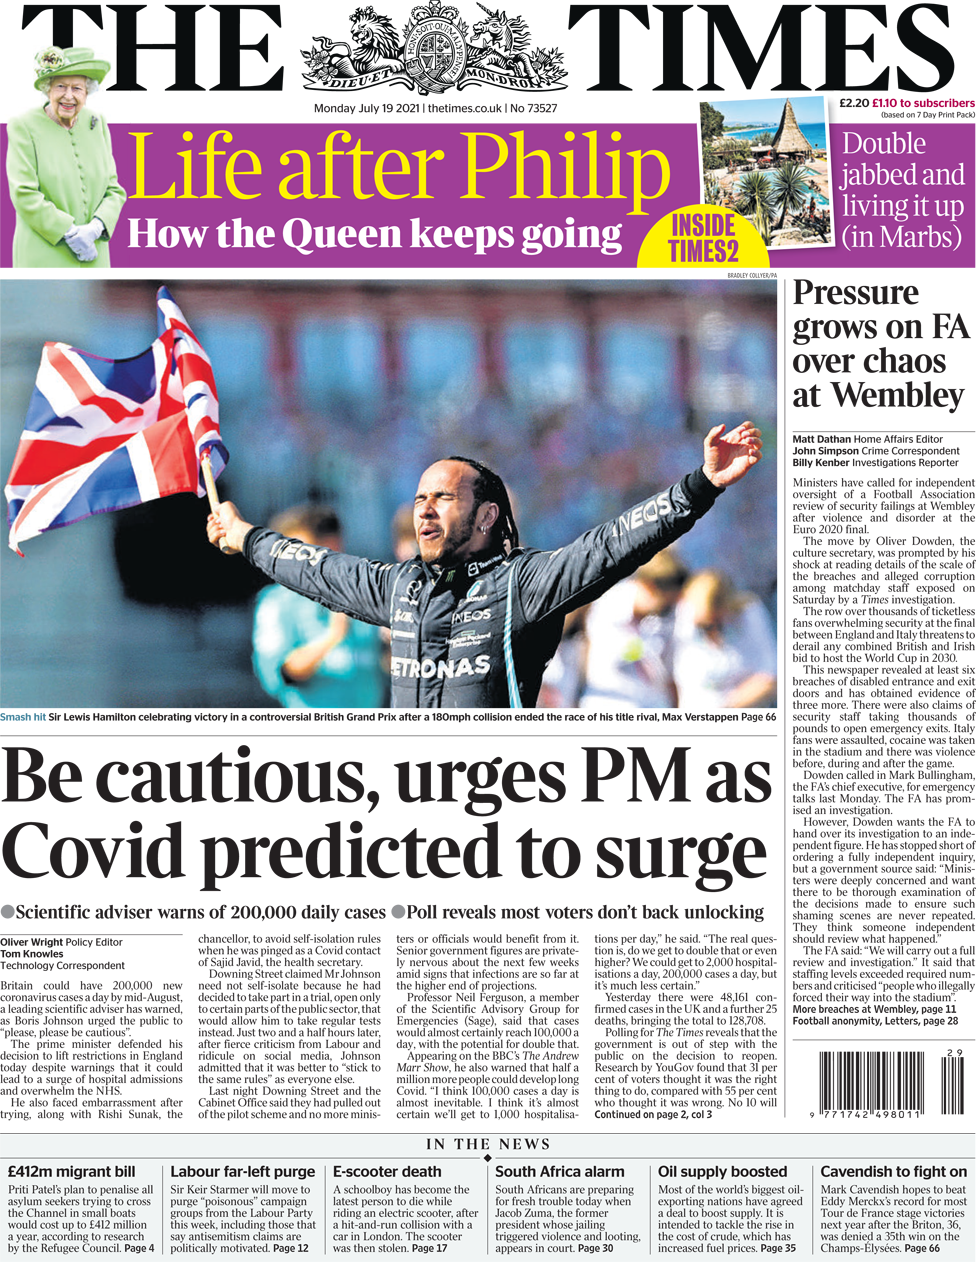 The Times front page 19 July 2021